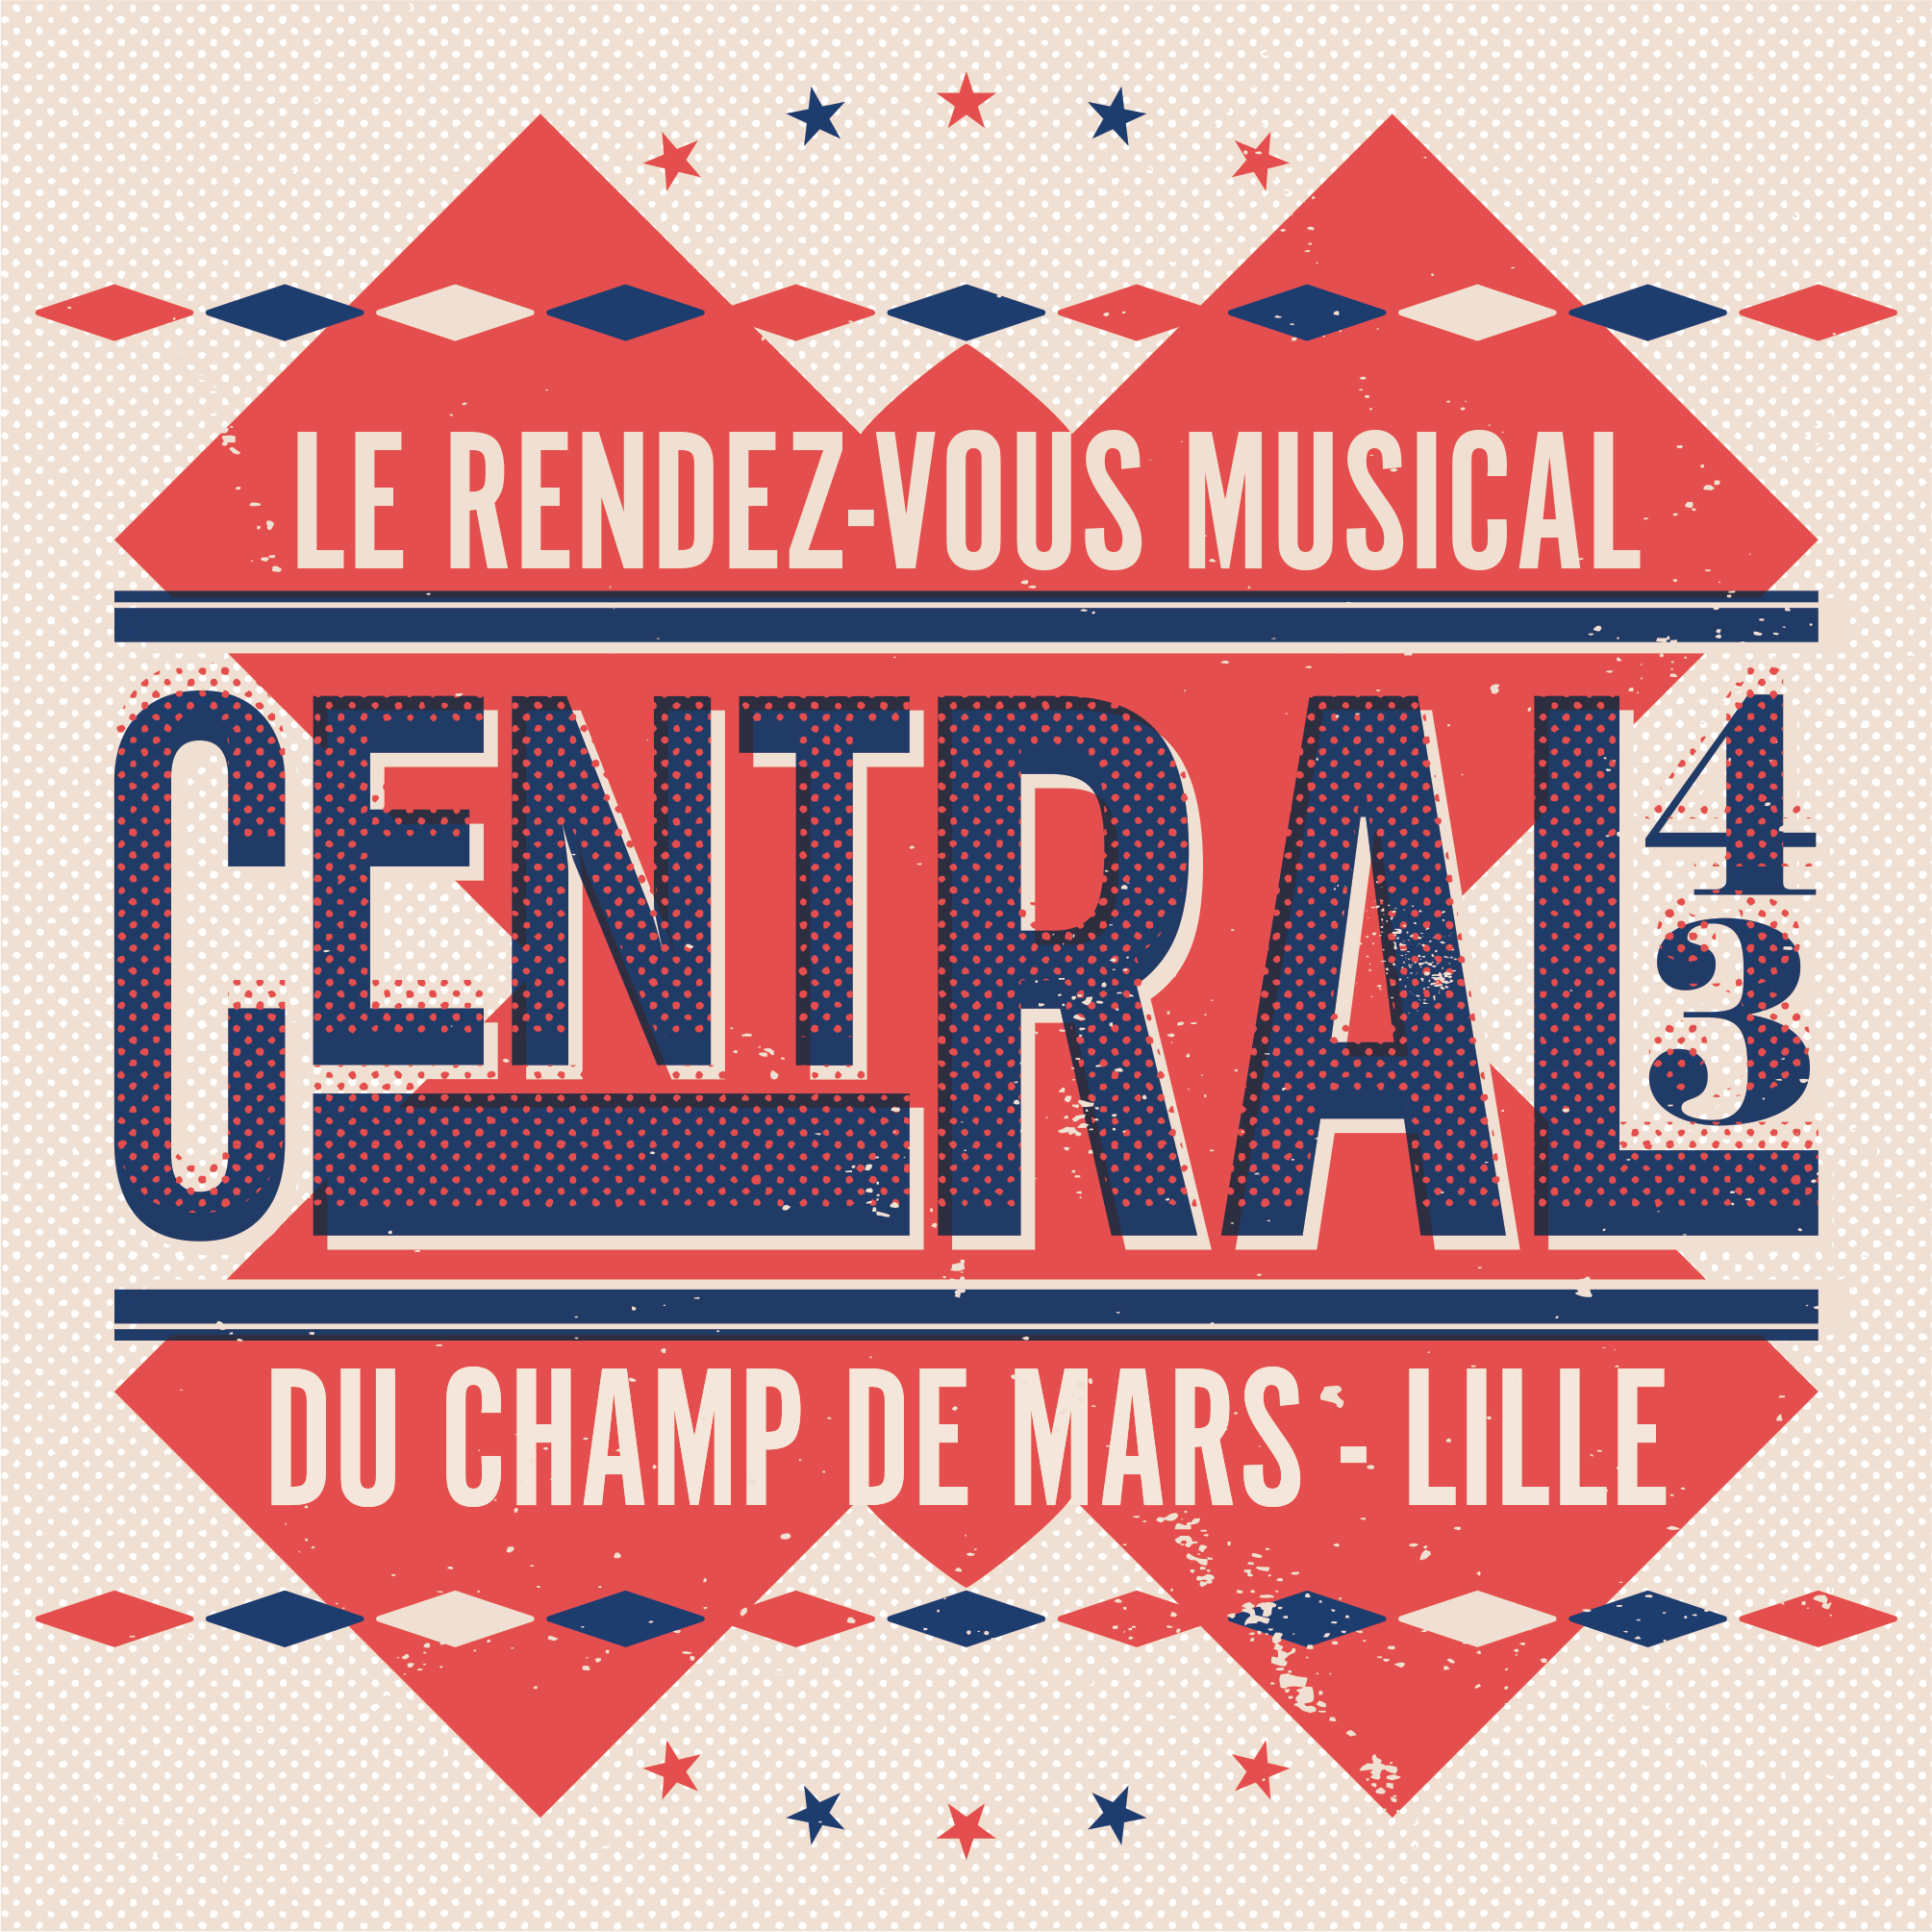 Central 43, le rdv musical du Champ de Mars